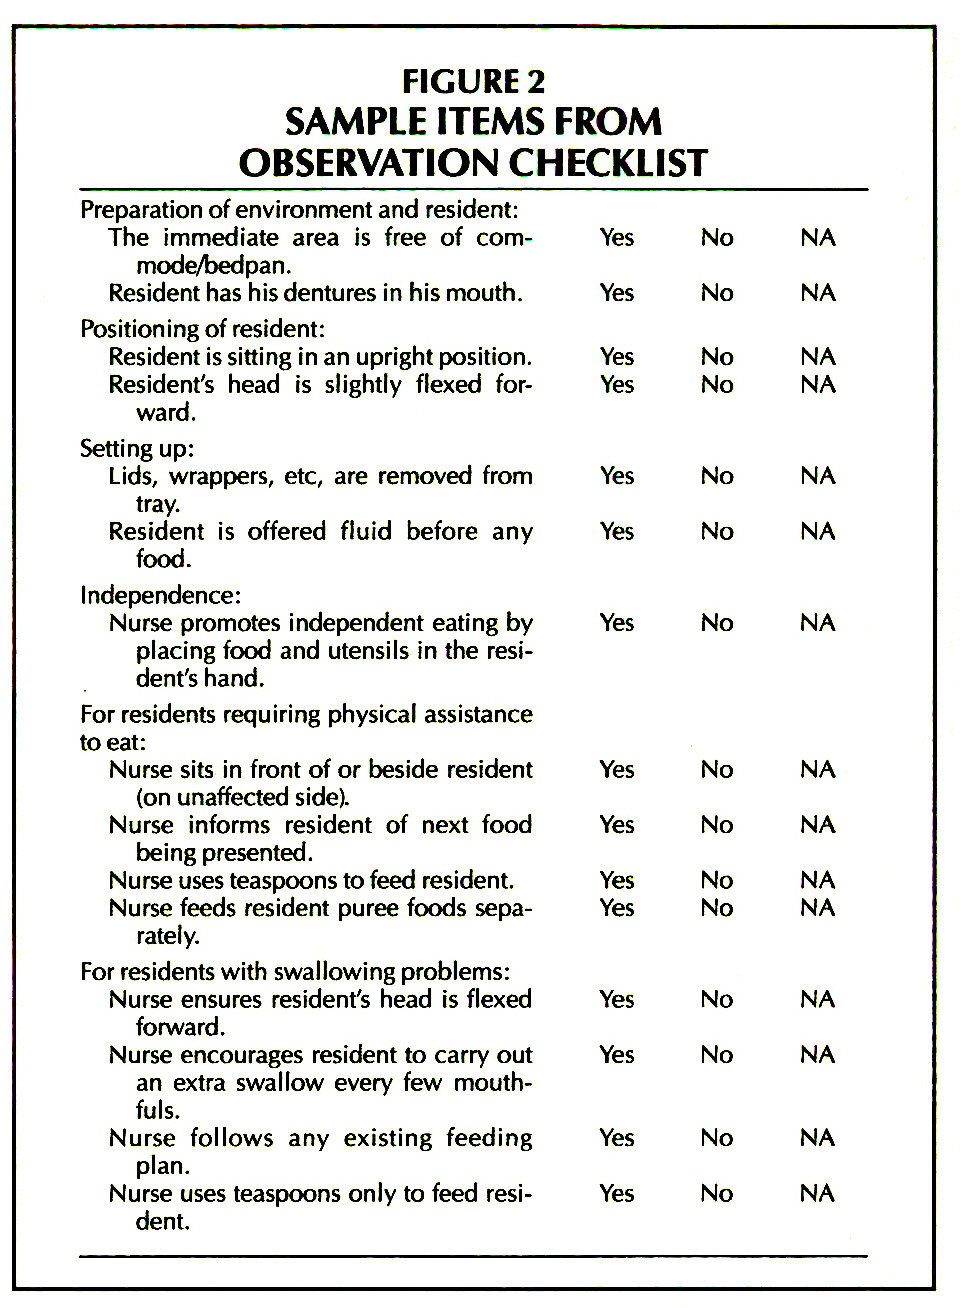 FIGURE 2SAMPLE ITEMS FROM OBSERVATION CHECKLIST